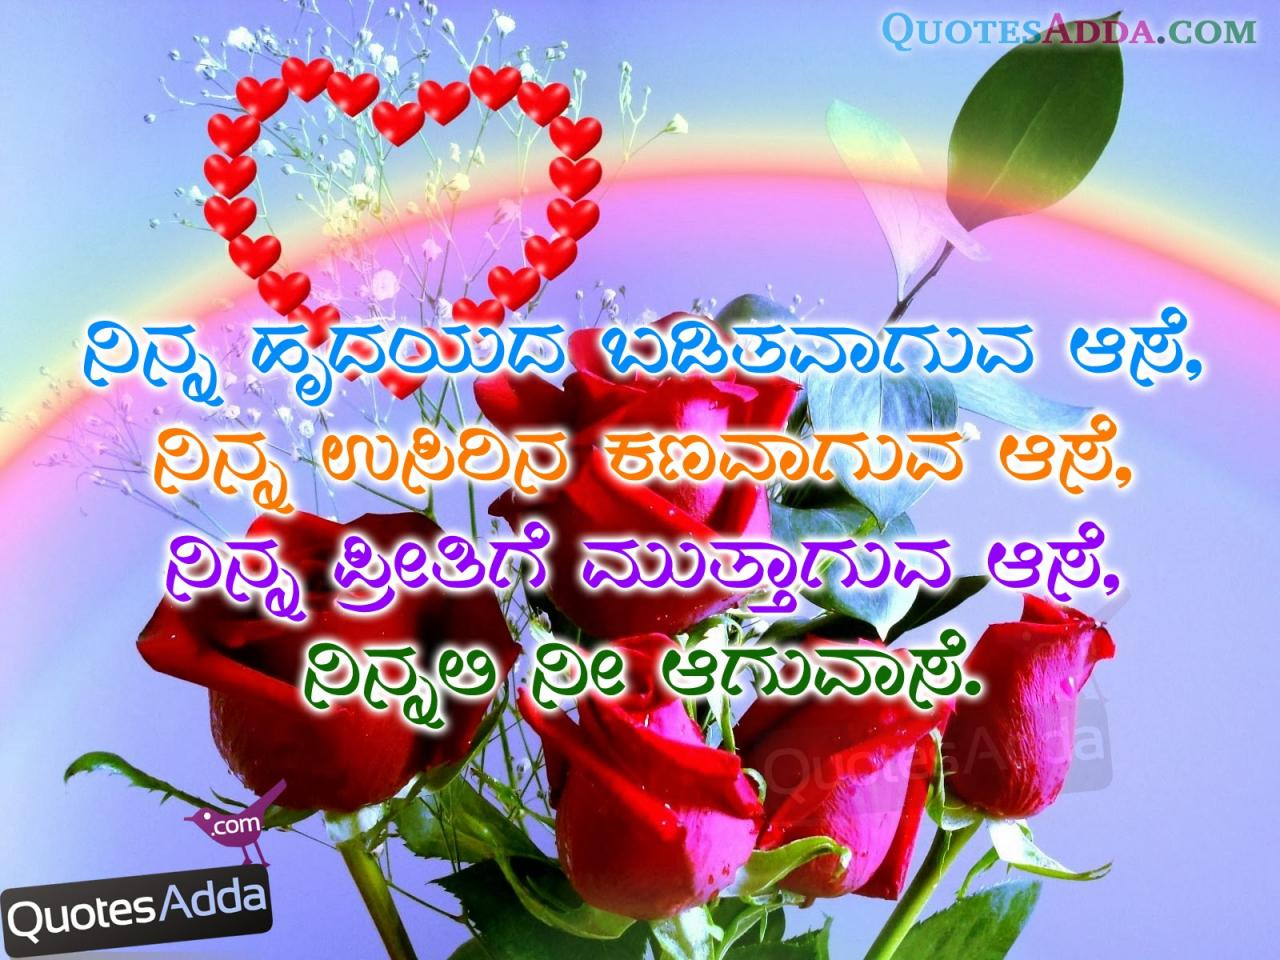 Kannada Love Quotes  Kannada Love Images